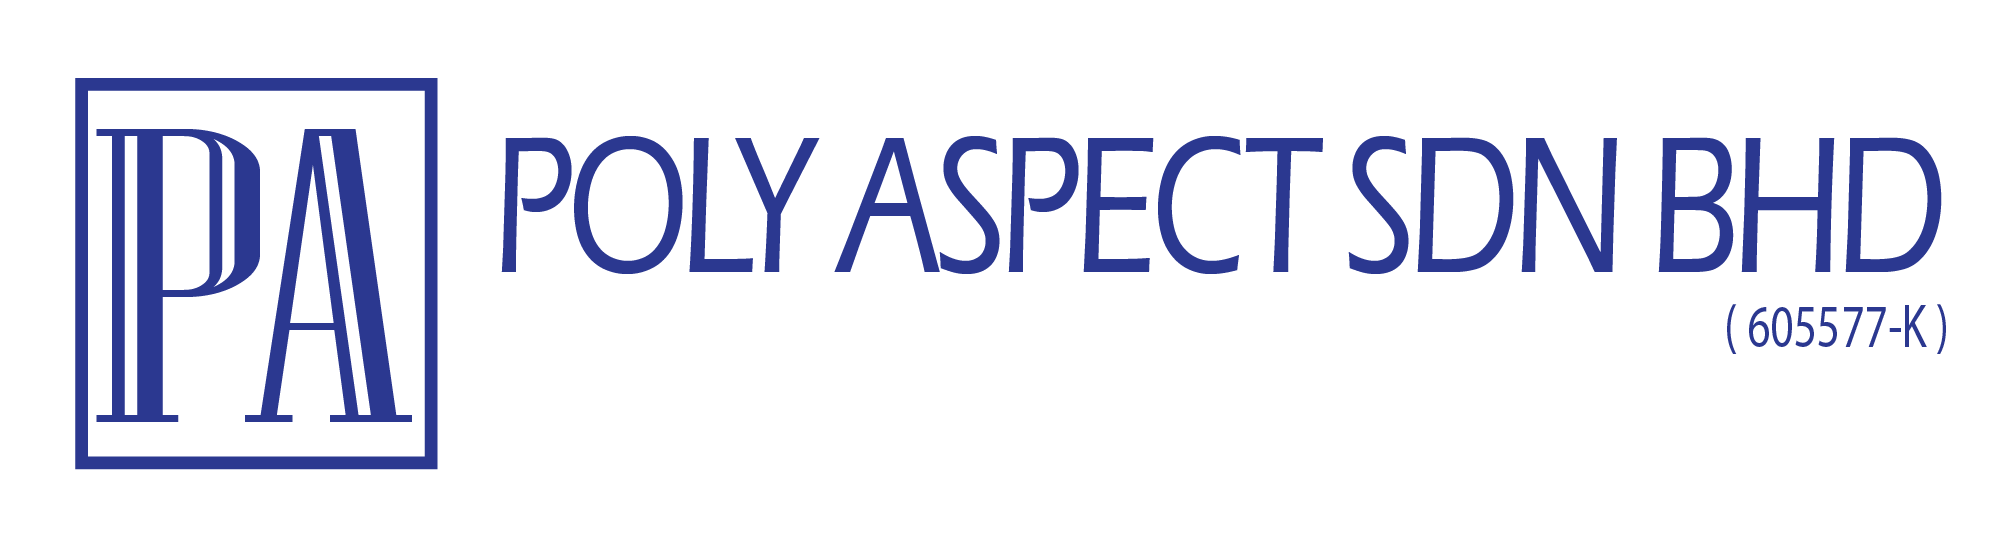 Poly Aspect Insulated Bag Manufacturer Malaysia